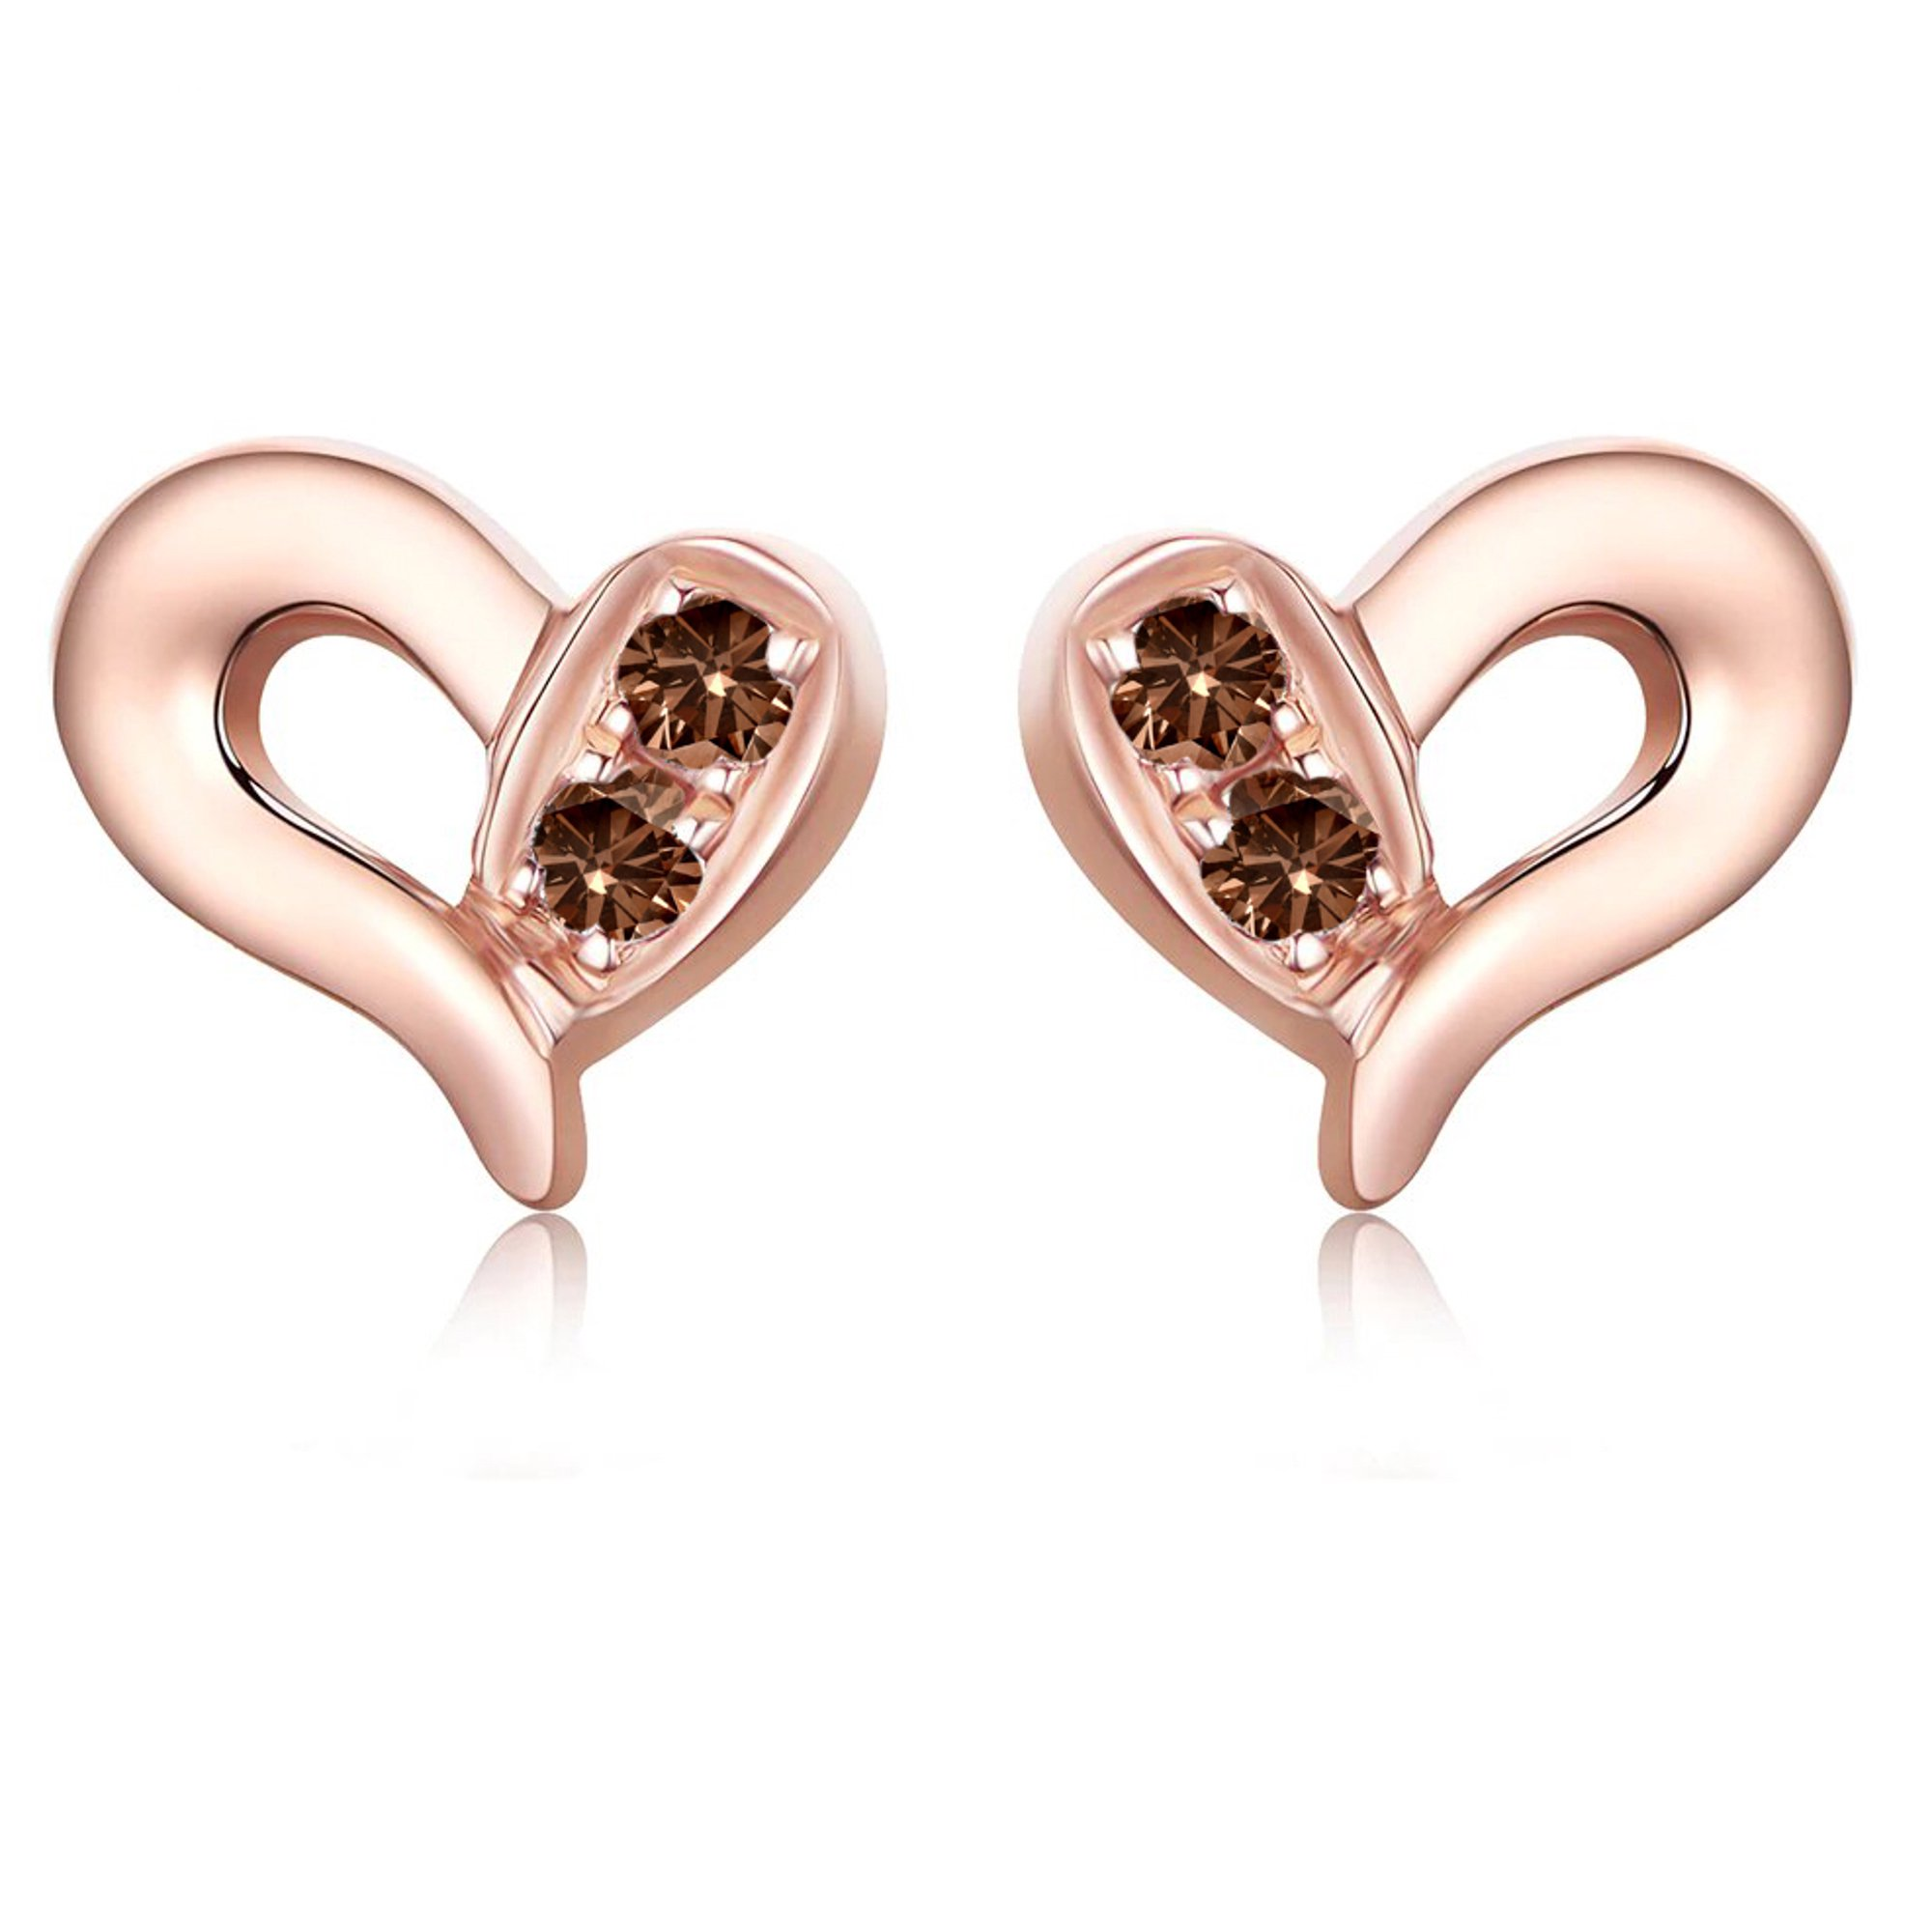 Heart Design 10 Carat Round Brilliant Chocolate Brown Diamond Stud Earrings In 10k Rose Gold Walmart Canada